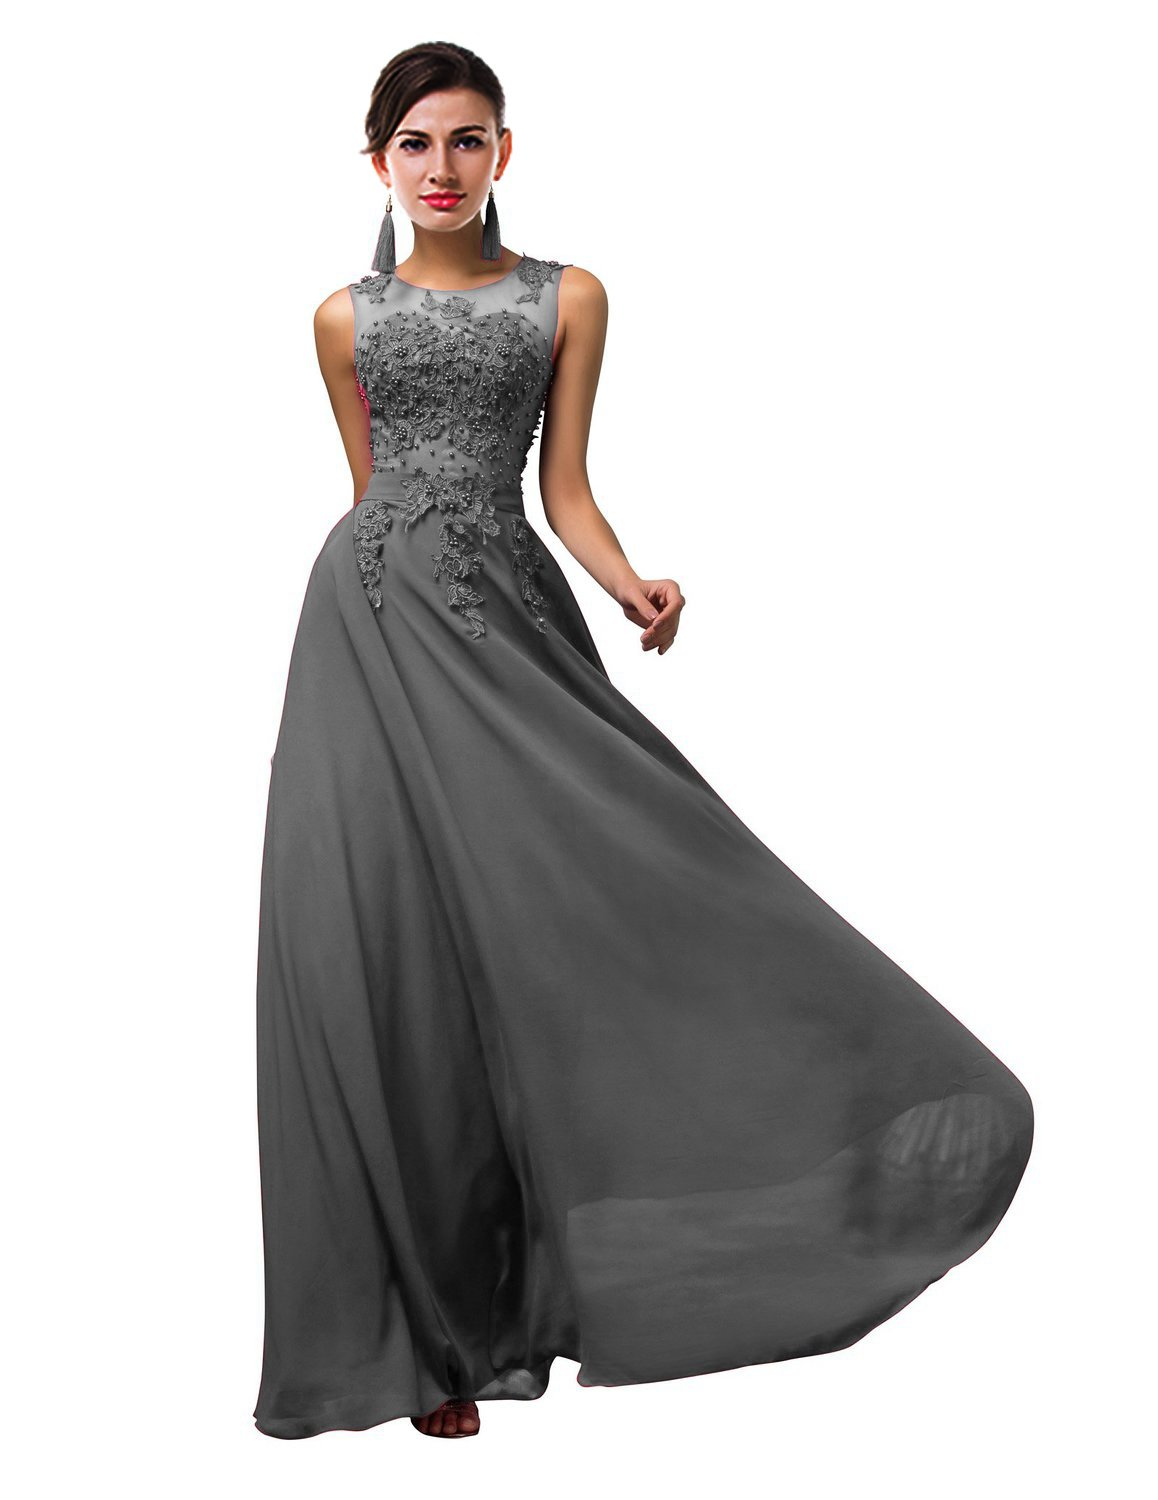 Thalia Women Long Sheer Neck Evening Bridesmaid Dresses Prom Gowns T004LF Gray US10